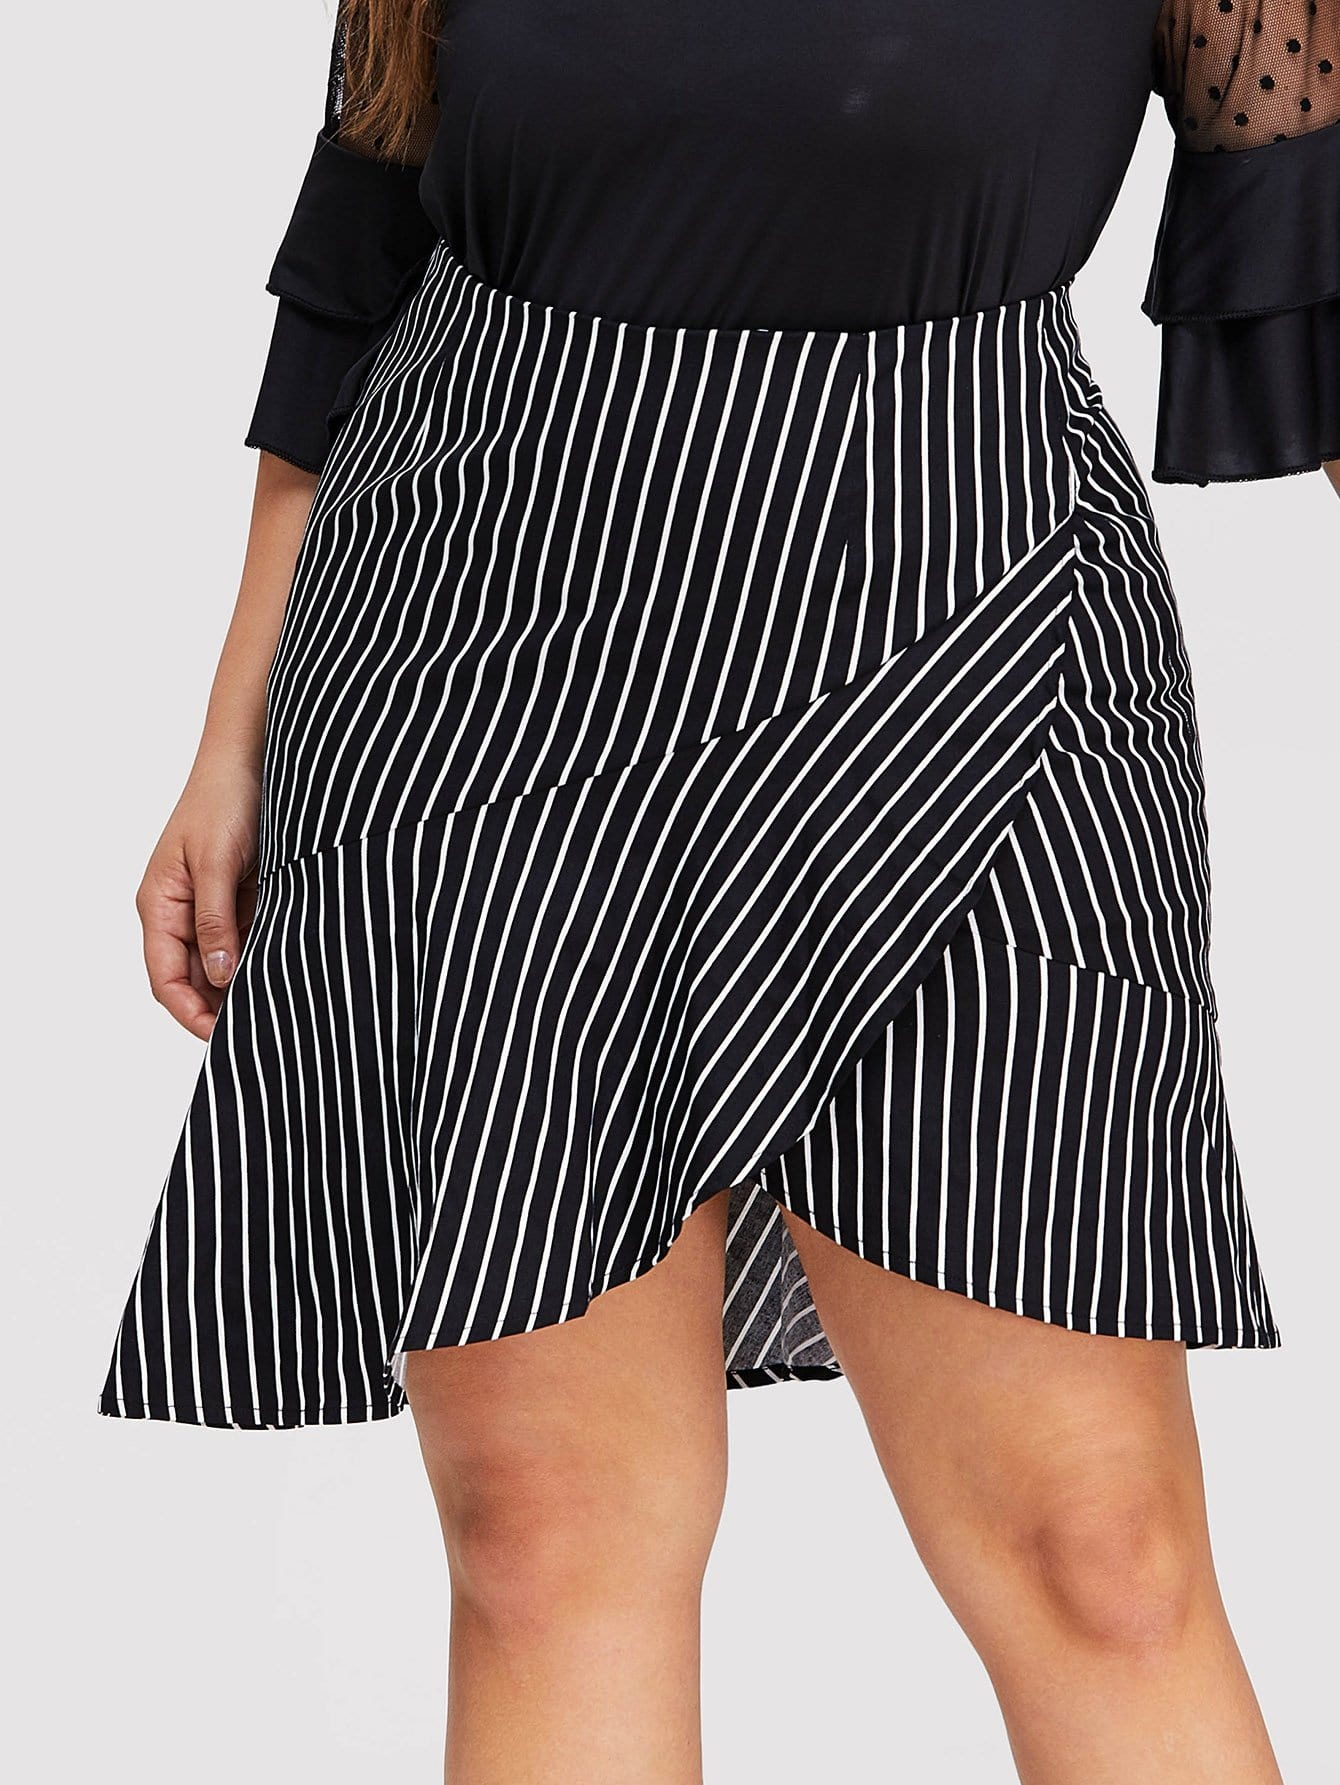 Plus Asymmetric Ruffle Hem Striped Wrap Skirt free shipping 10pcs ba6986fs